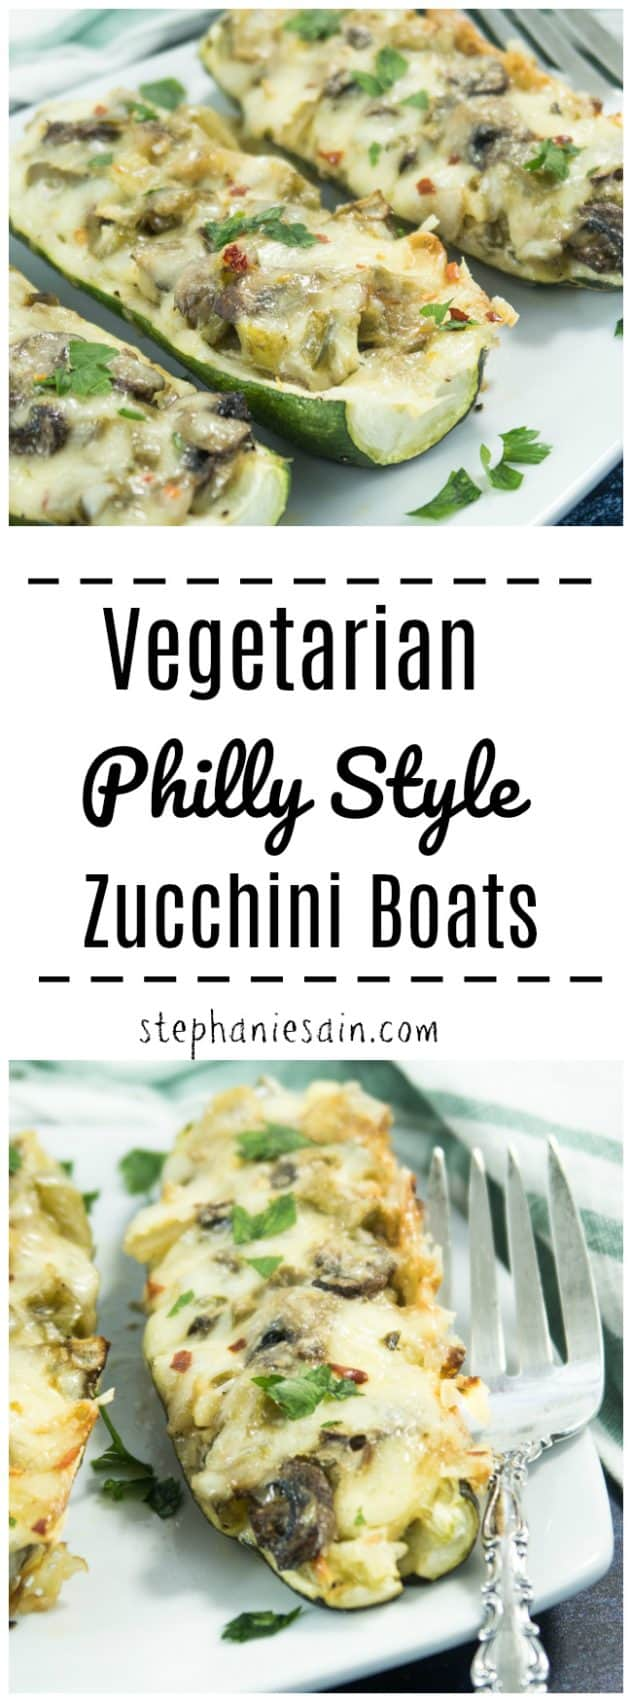 These Vegetarian Philly Style Zucchini Boats have all the same flavors of a classic Philly sub without the bread. Loaded with sauteed bell peppers, onions, mushrooms & cheese for an easy tasty dinner. Gluten Free & Vegetarian.